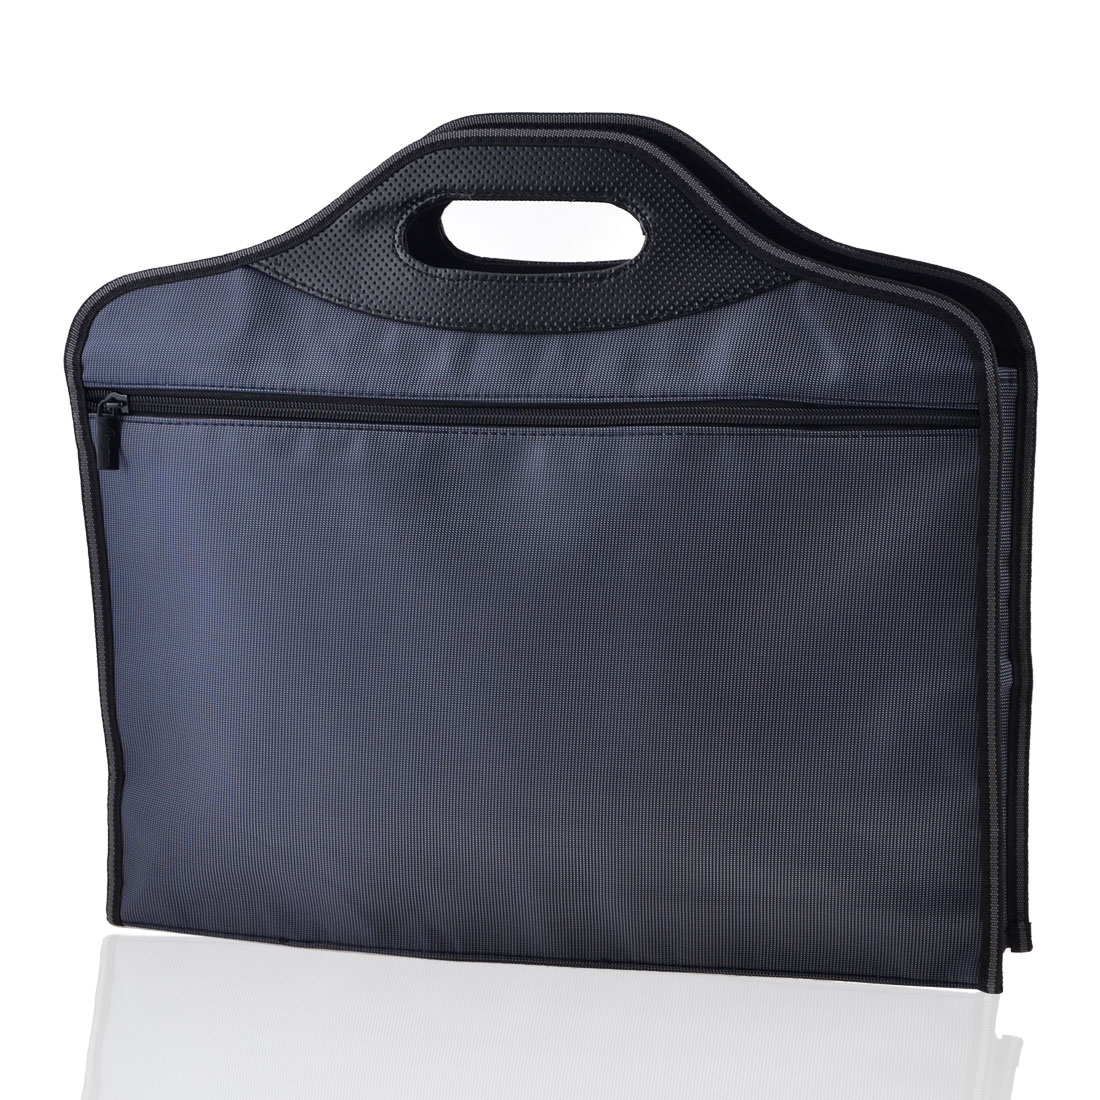 40cm x 35cm Rectangle 2 Sections Zip Up Closure Nylon File Bills Bag Dark Blue